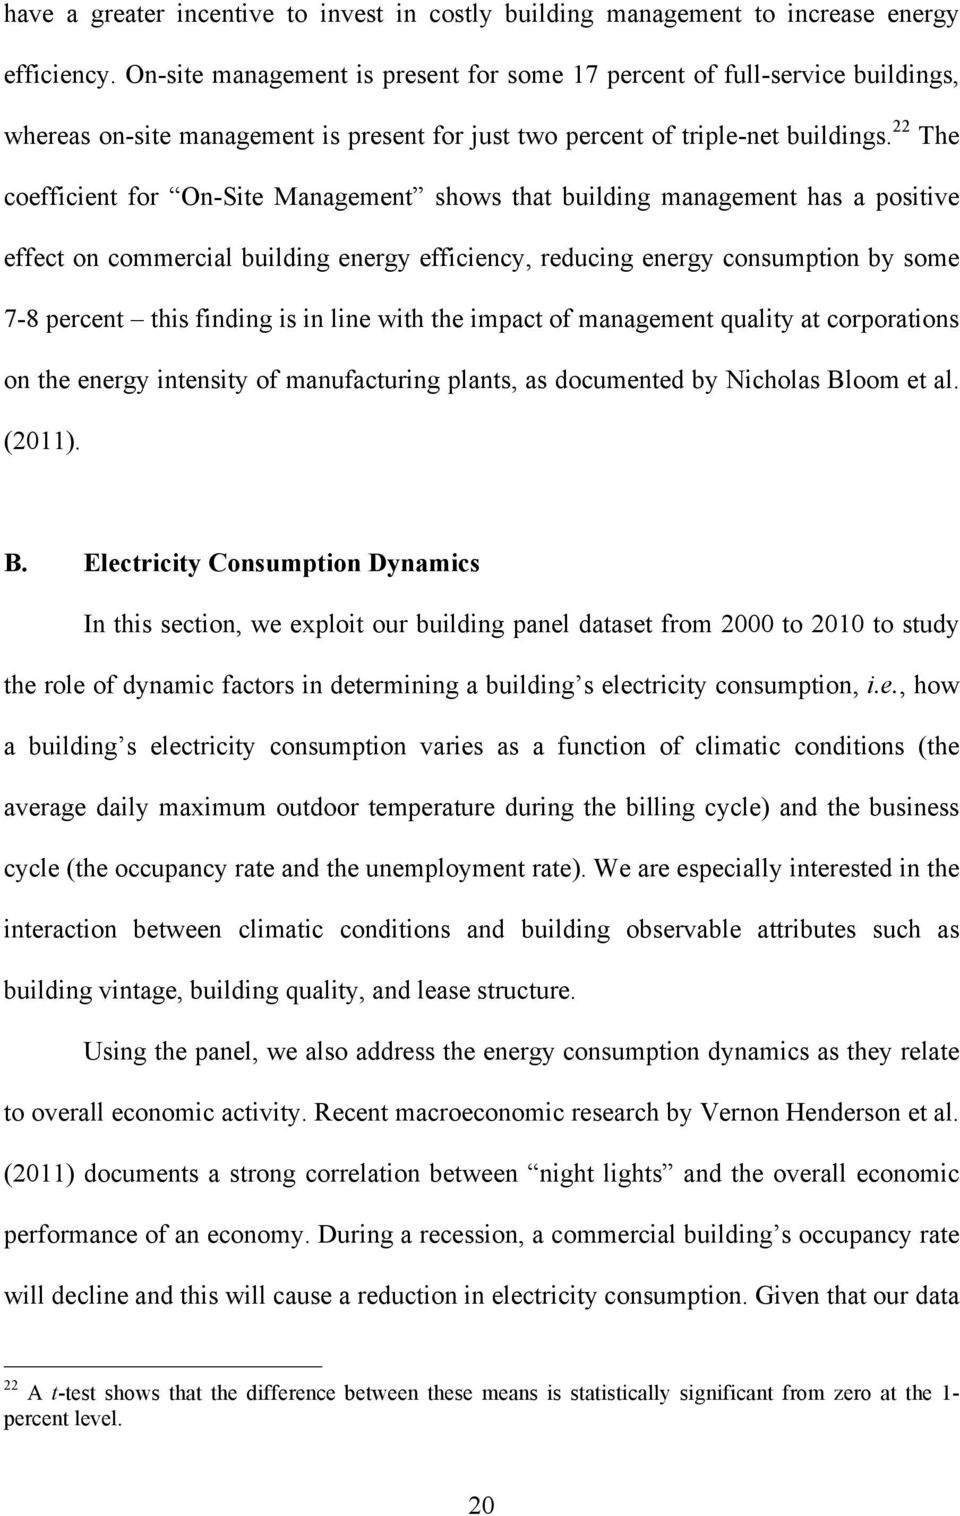 22 The coefficient for On-Site Management shows that building management has a positive effect on commercial building energy efficiency, reducing energy consumption by some 7-8 percent this finding